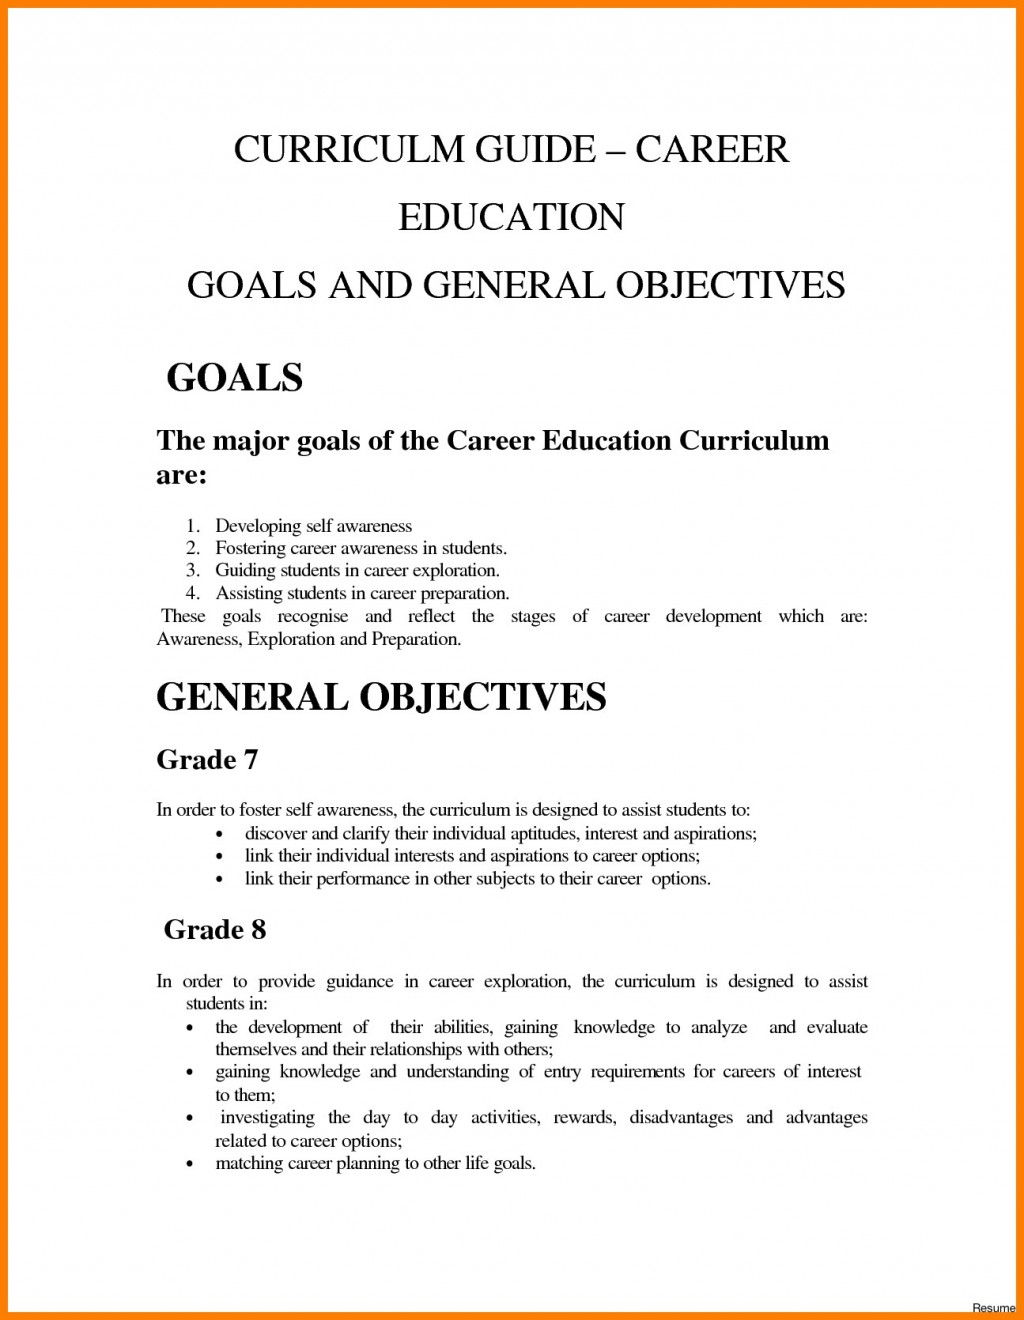 017 Work Goals And Objectivess Career Goal Essay Nursing Of Imposing Examples Future Pdf Educational Large